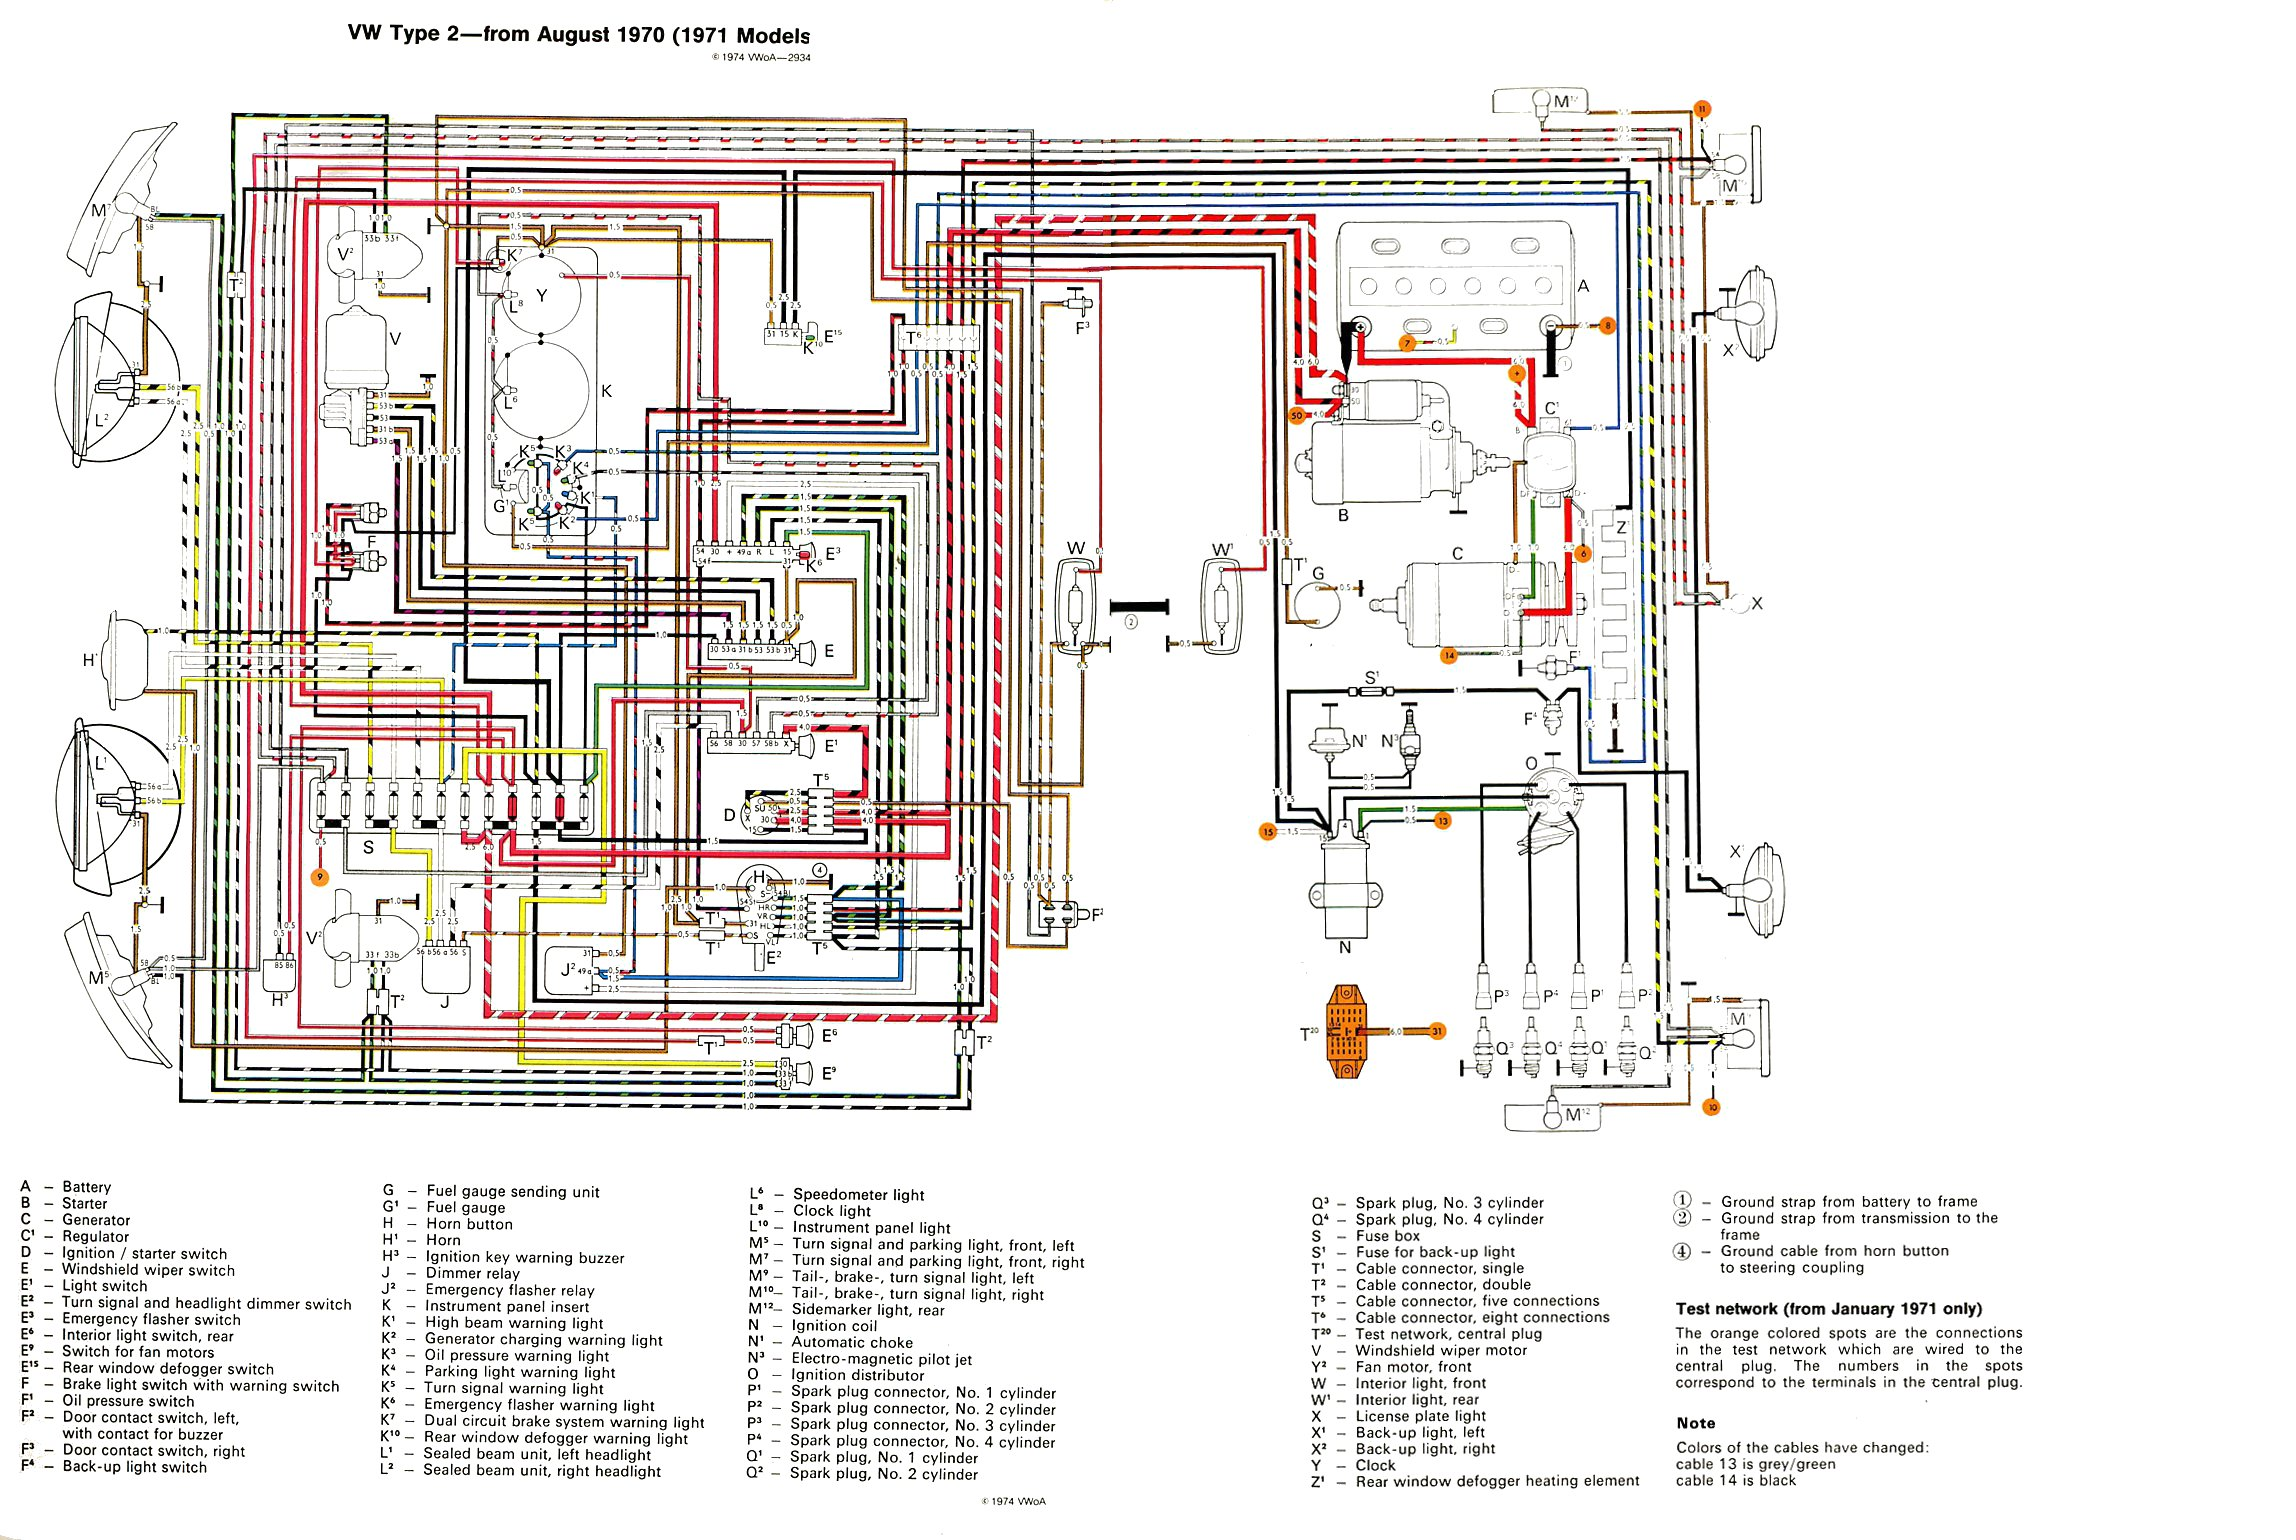 fuse box wiring diagram fuse image wiring diagram thesamba com type 2 wiring diagrams on fuse box wiring diagram